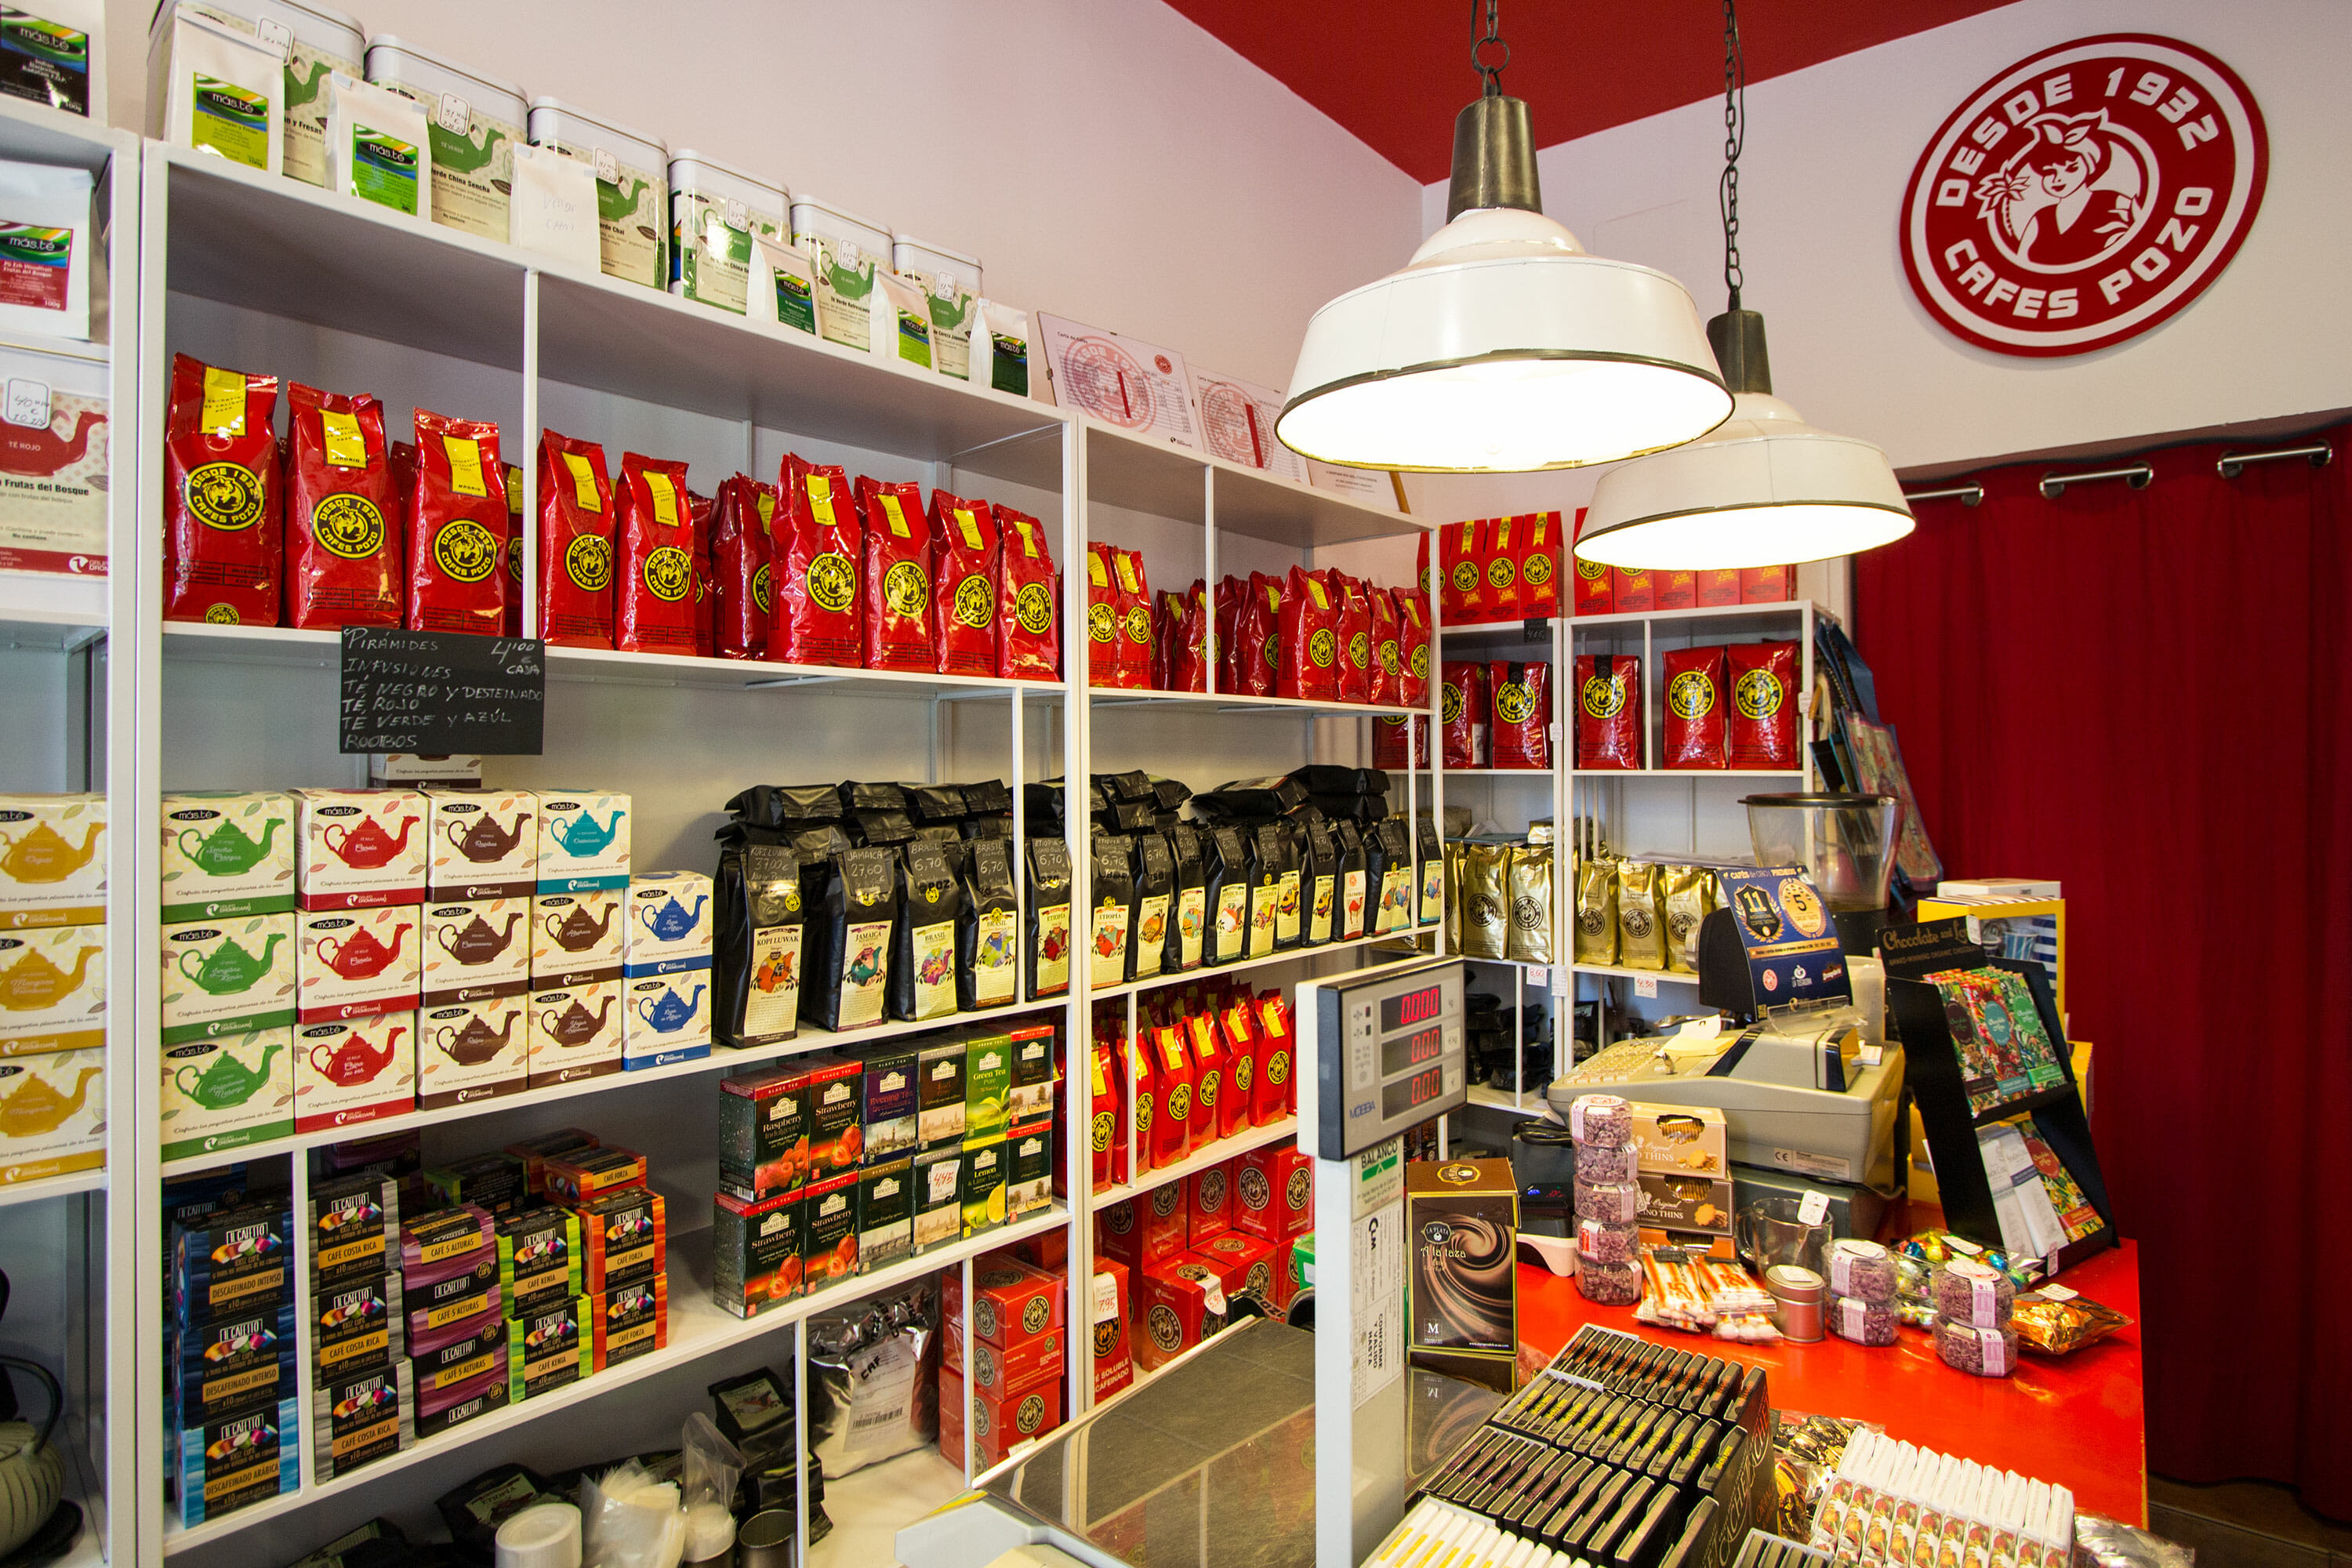 Caf s pozo una peque a tienda para coffee lovers en - Productos de decoracion ...